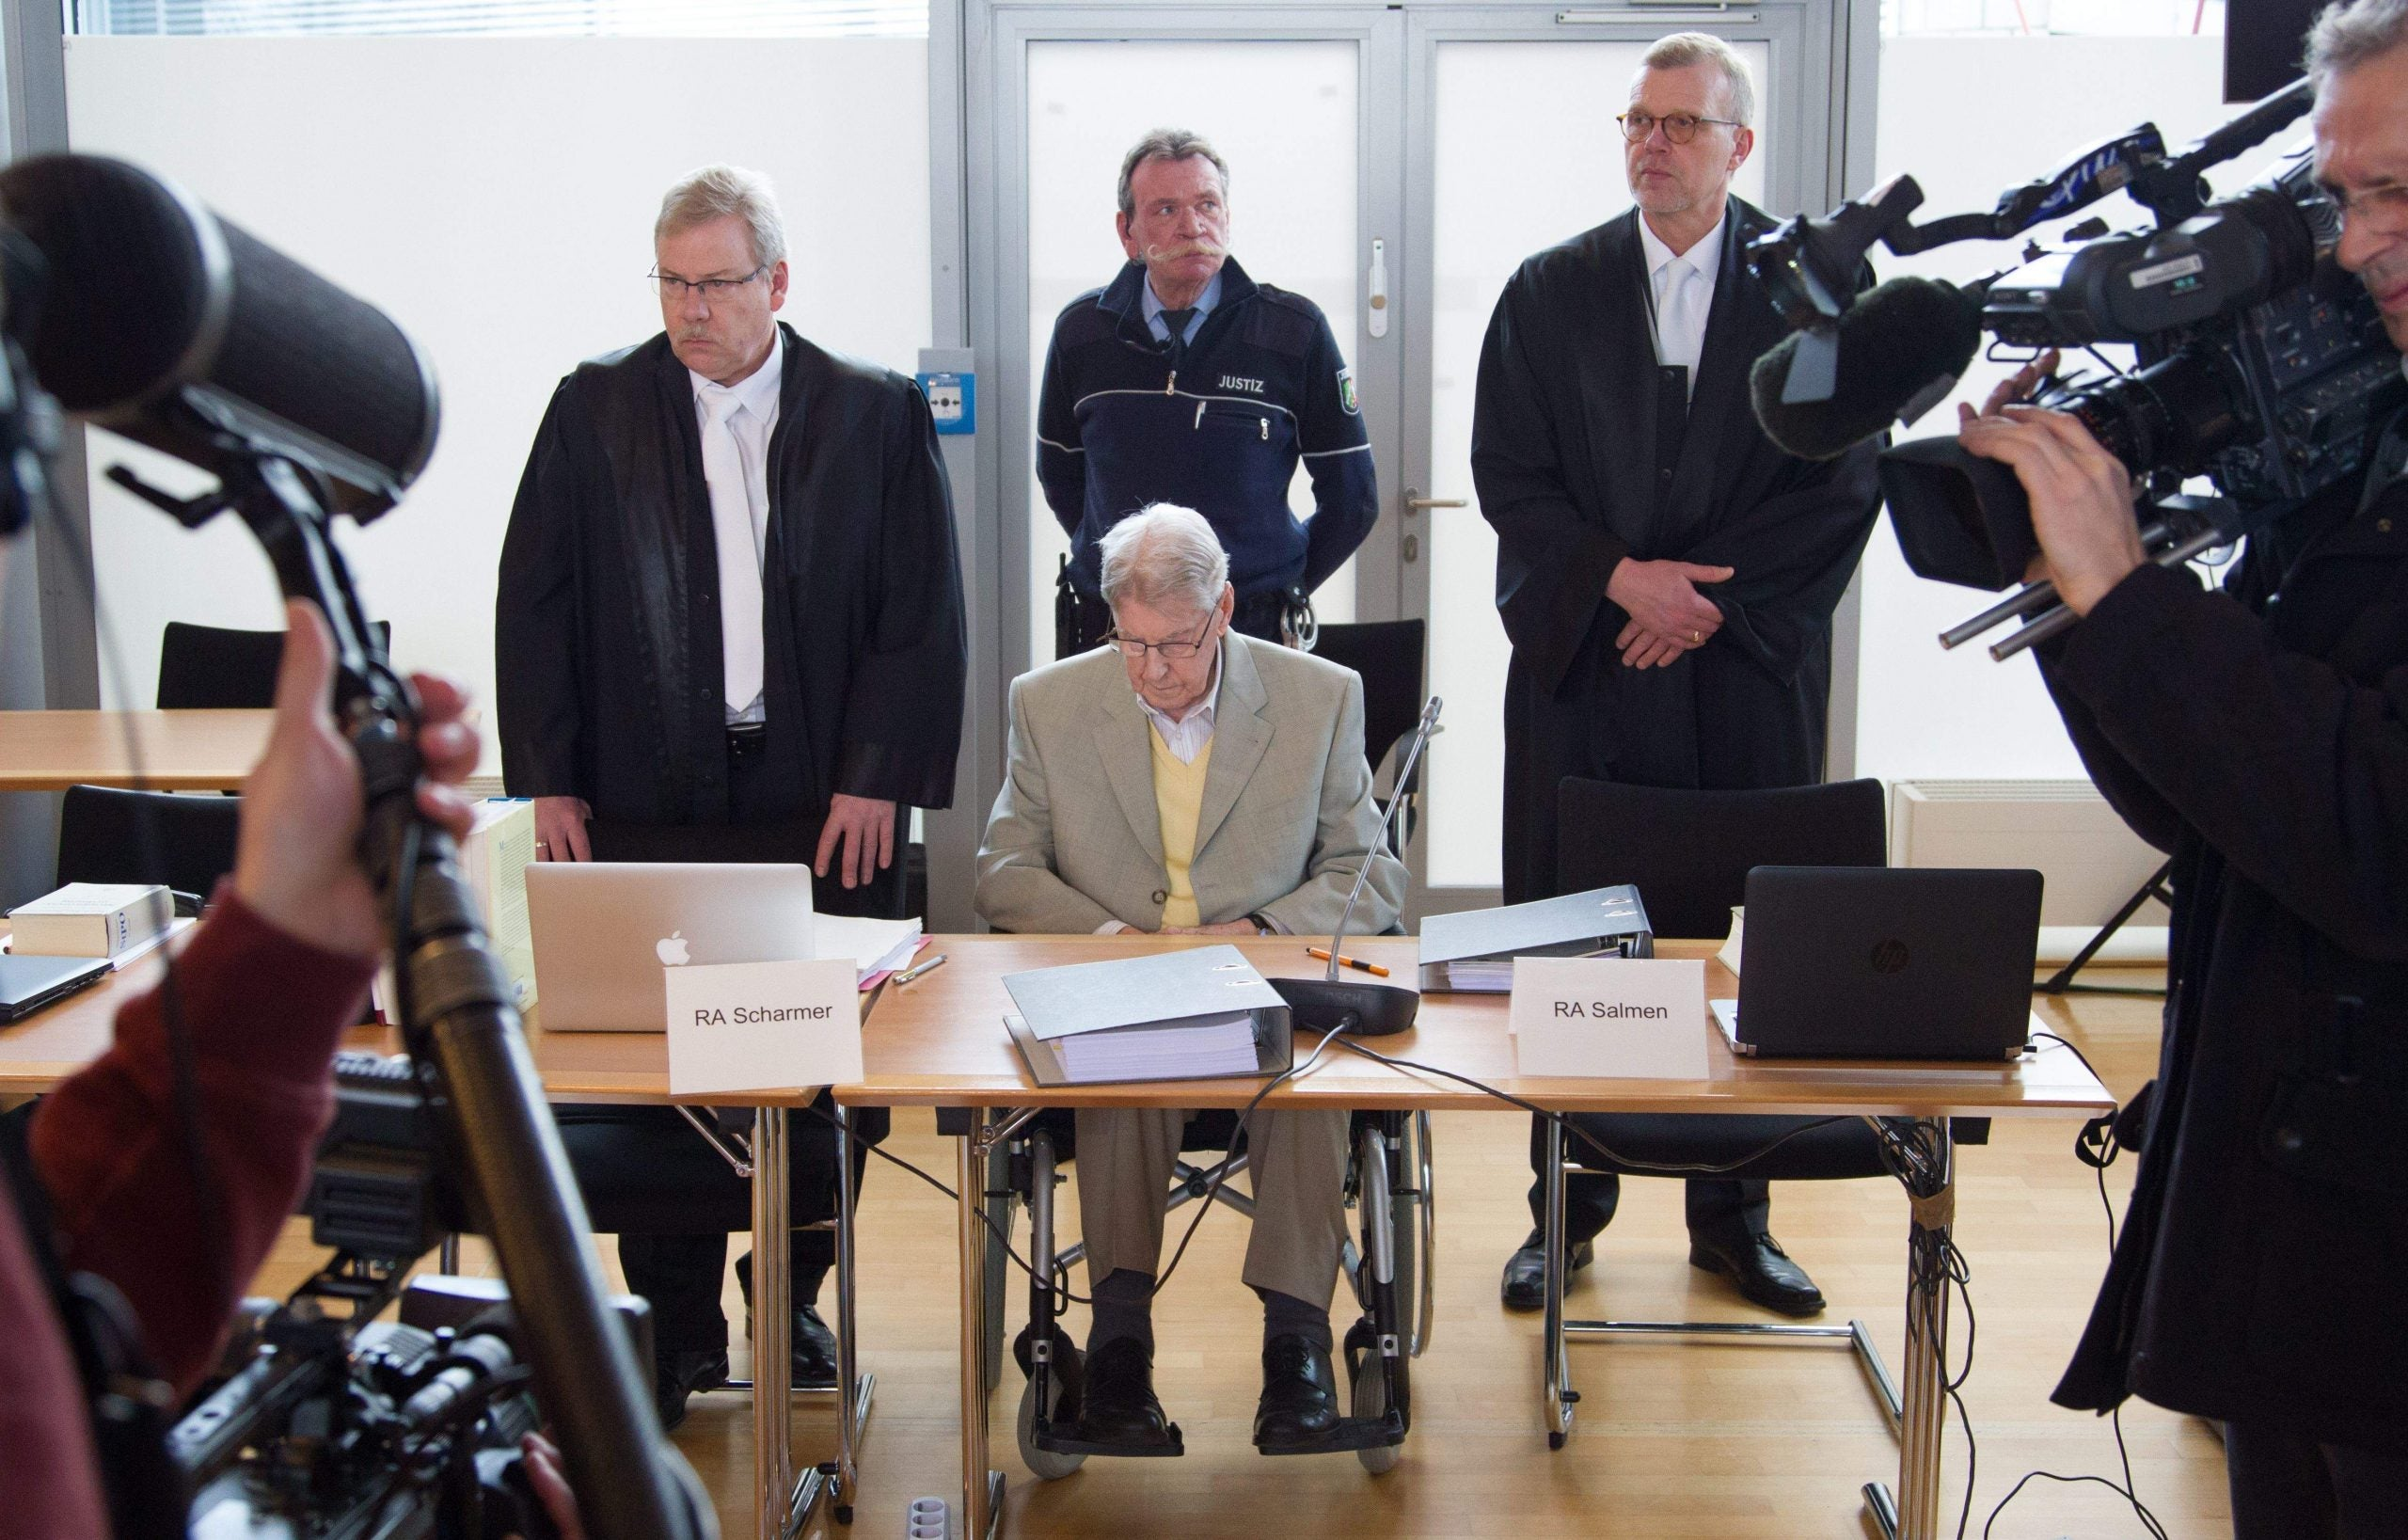 An Auschwitz guard has been sentenced to five years in jail. Has the law failed?